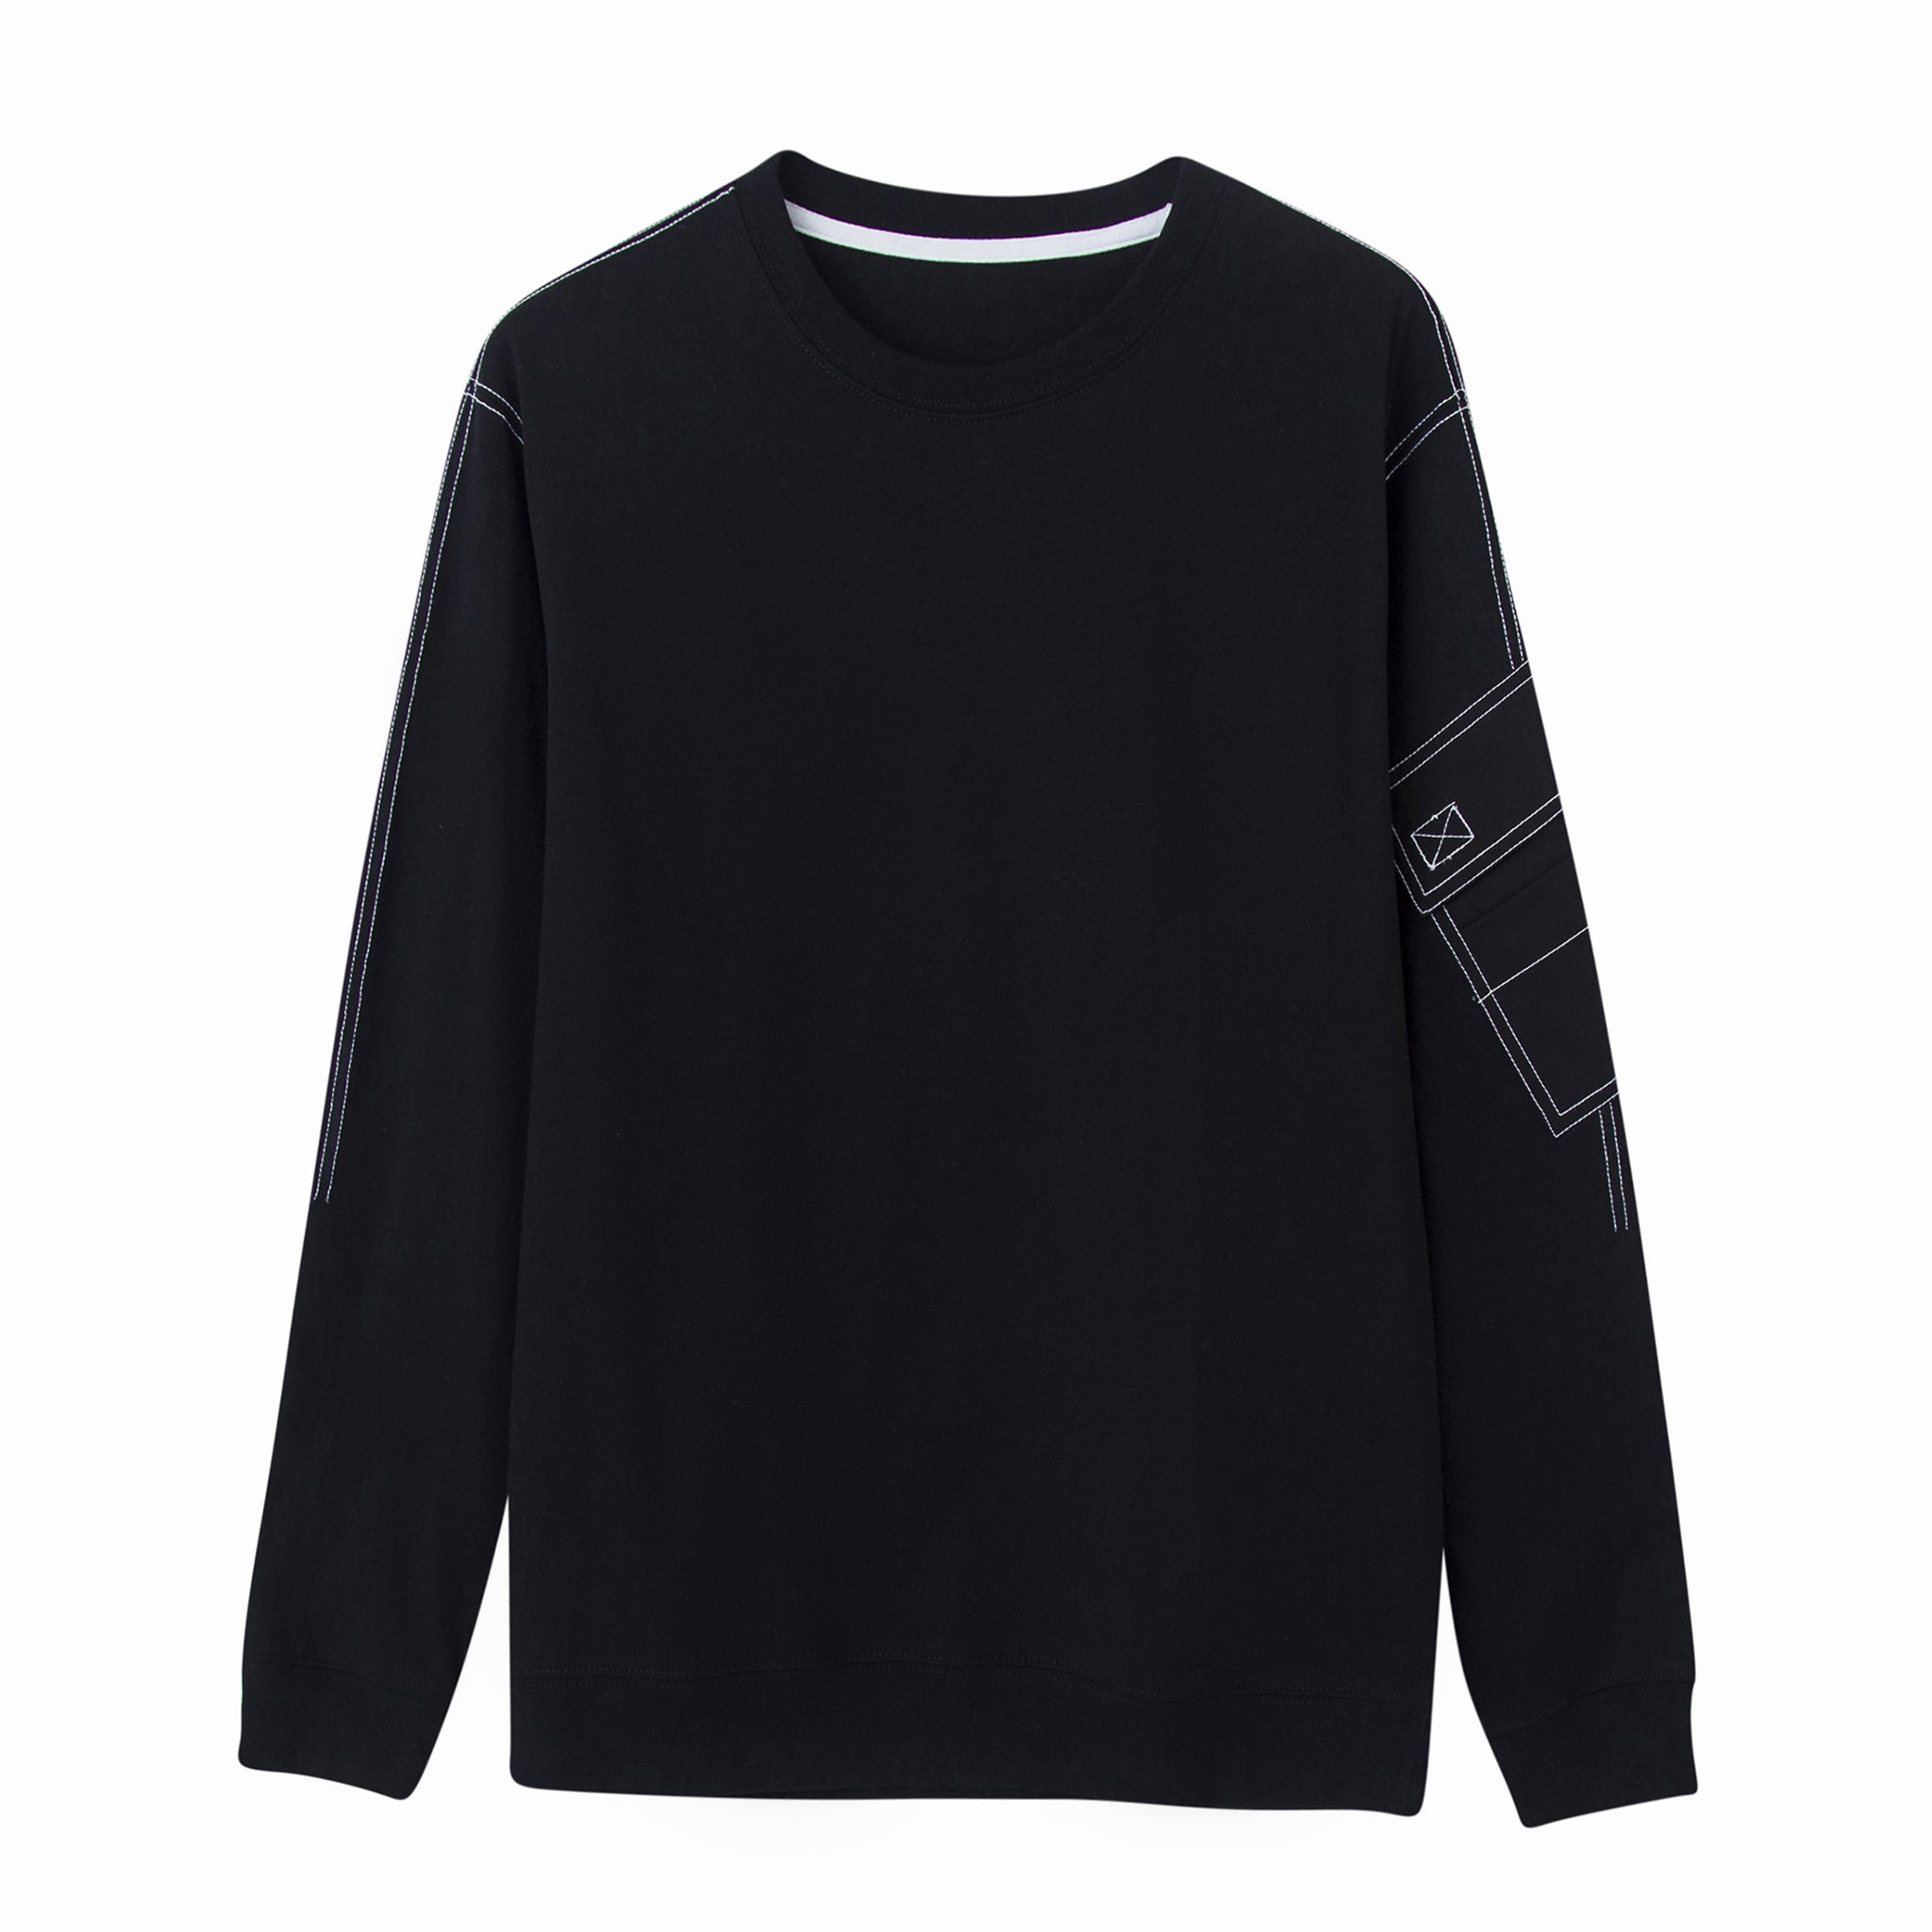 Le Fruit Defendu Pocket Sweatshirt (Black)